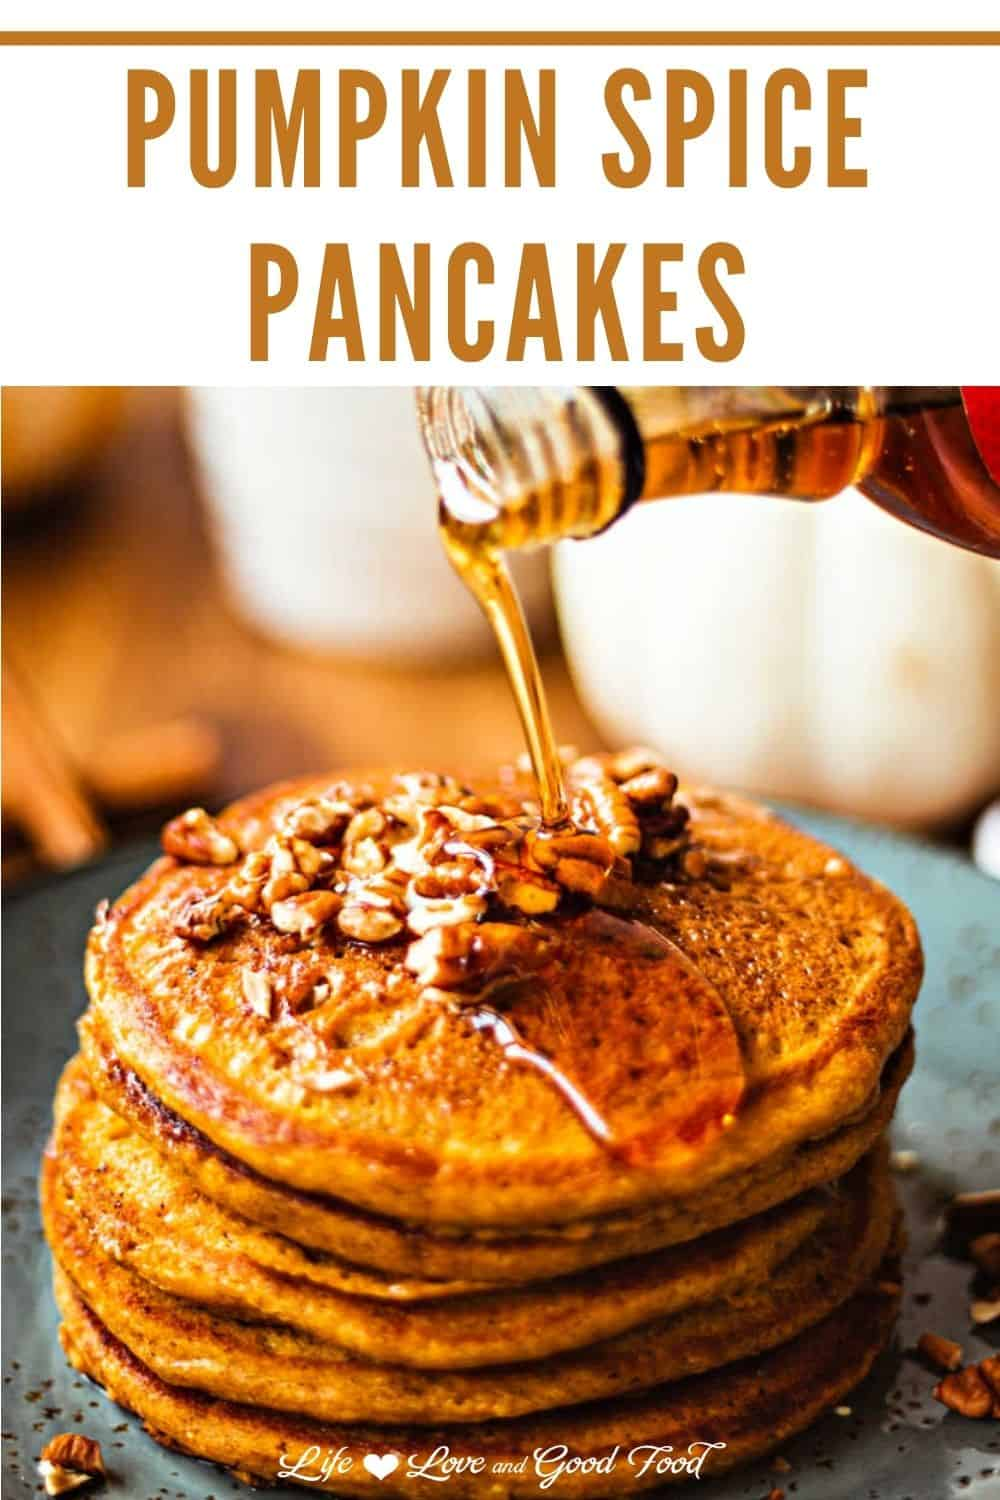 Pumpkin Spice Pancakes are light and fluffy, full of pumpkin flavor, and just perfect for a special Fall breakfast. Topped with toasted pecans and maple syrup, these pumpkin pancakes are bursting with hints of cinnamon, nutmeg, and cloves.